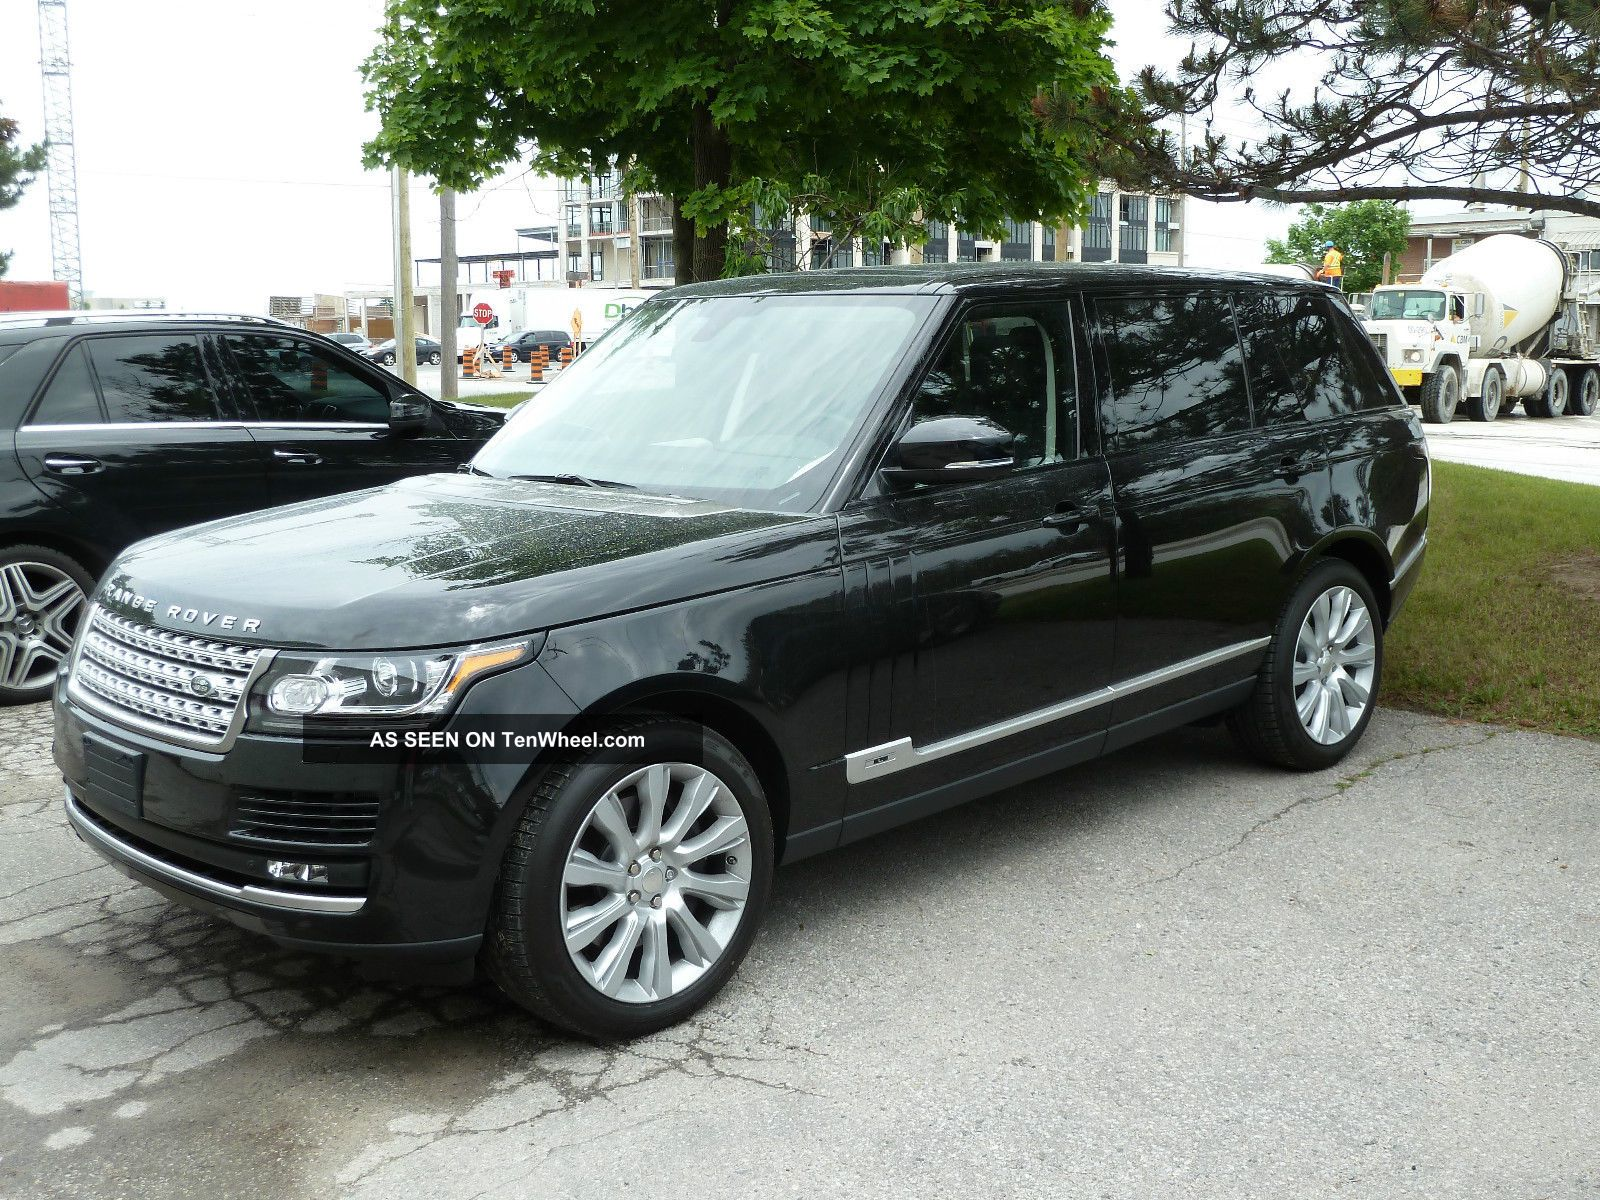 2014 range rover v8 supercharged long wheelbase lwb. Black Bedroom Furniture Sets. Home Design Ideas